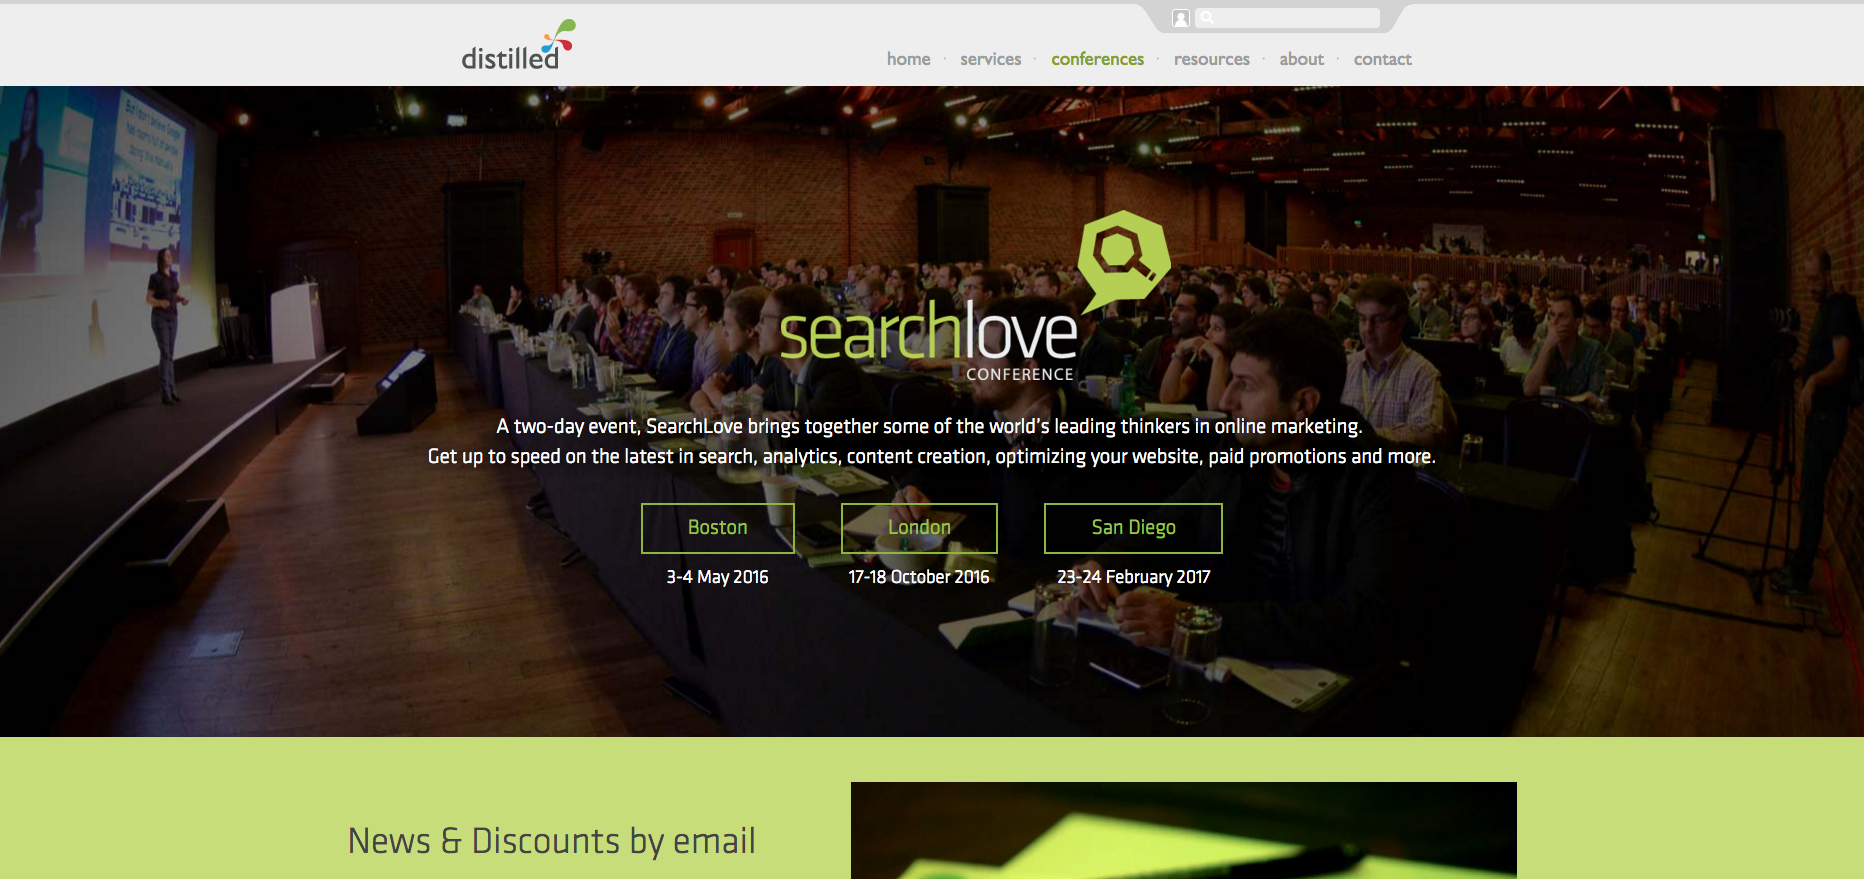 SearchLove_Conference.png